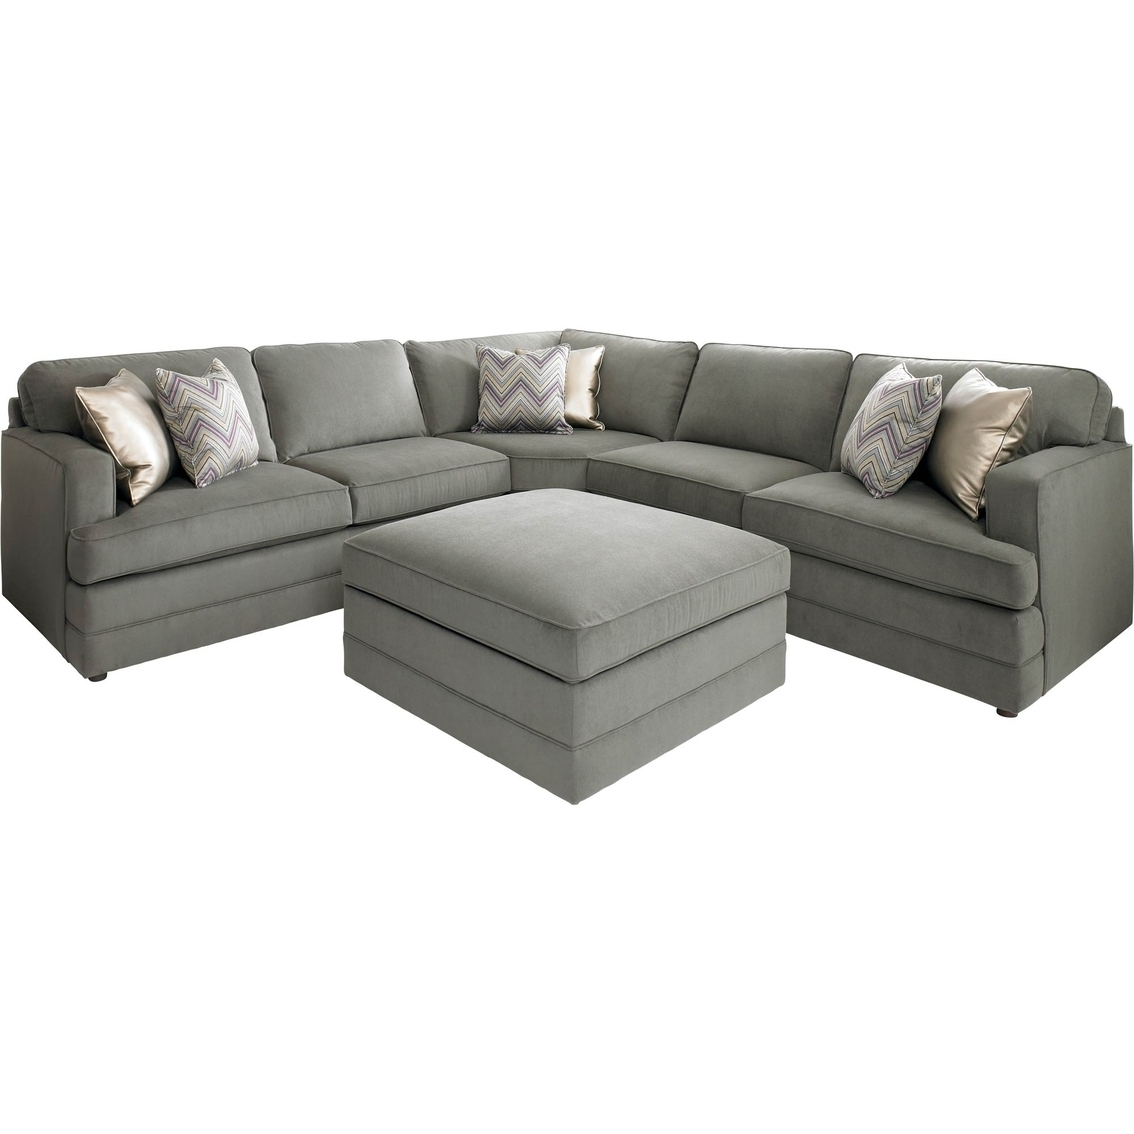 Bassett Dalton L Shaped Sectional Sofa With Ottoman | Making Our Within High Point Nc Sectional Sofas (View 5 of 10)